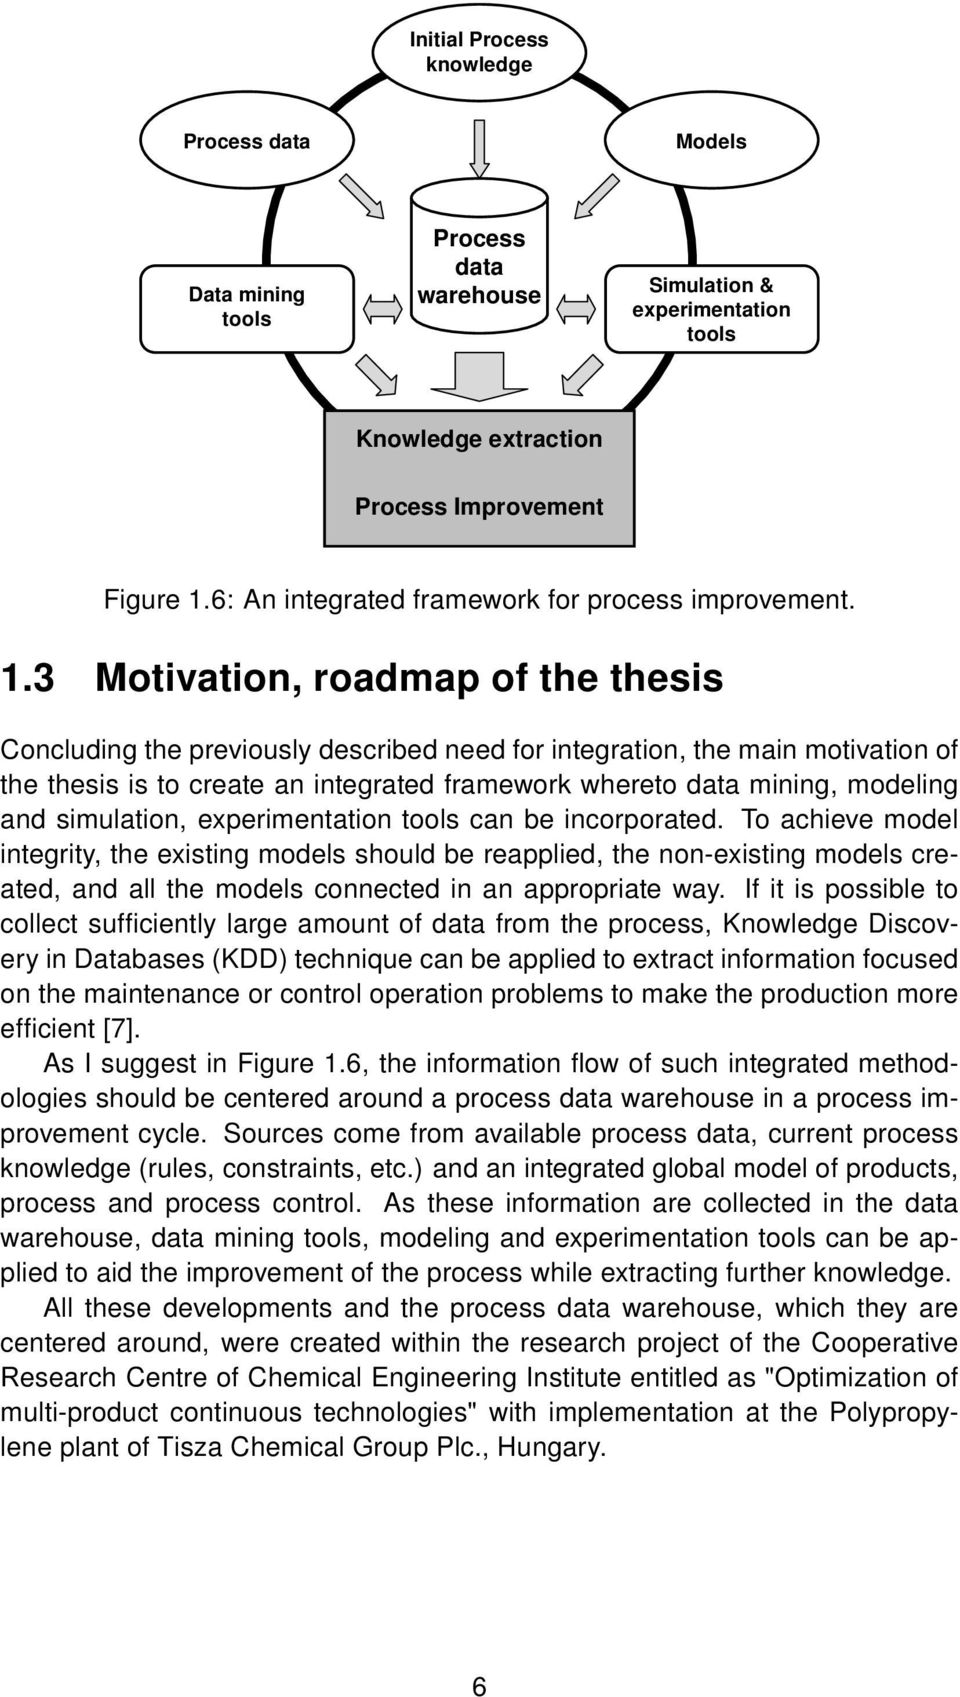 phd thesis in data mining Declarative techniques for modeling and mining business processes jan suggested me to write a phd thesis on the relationship and data mining techniques to.